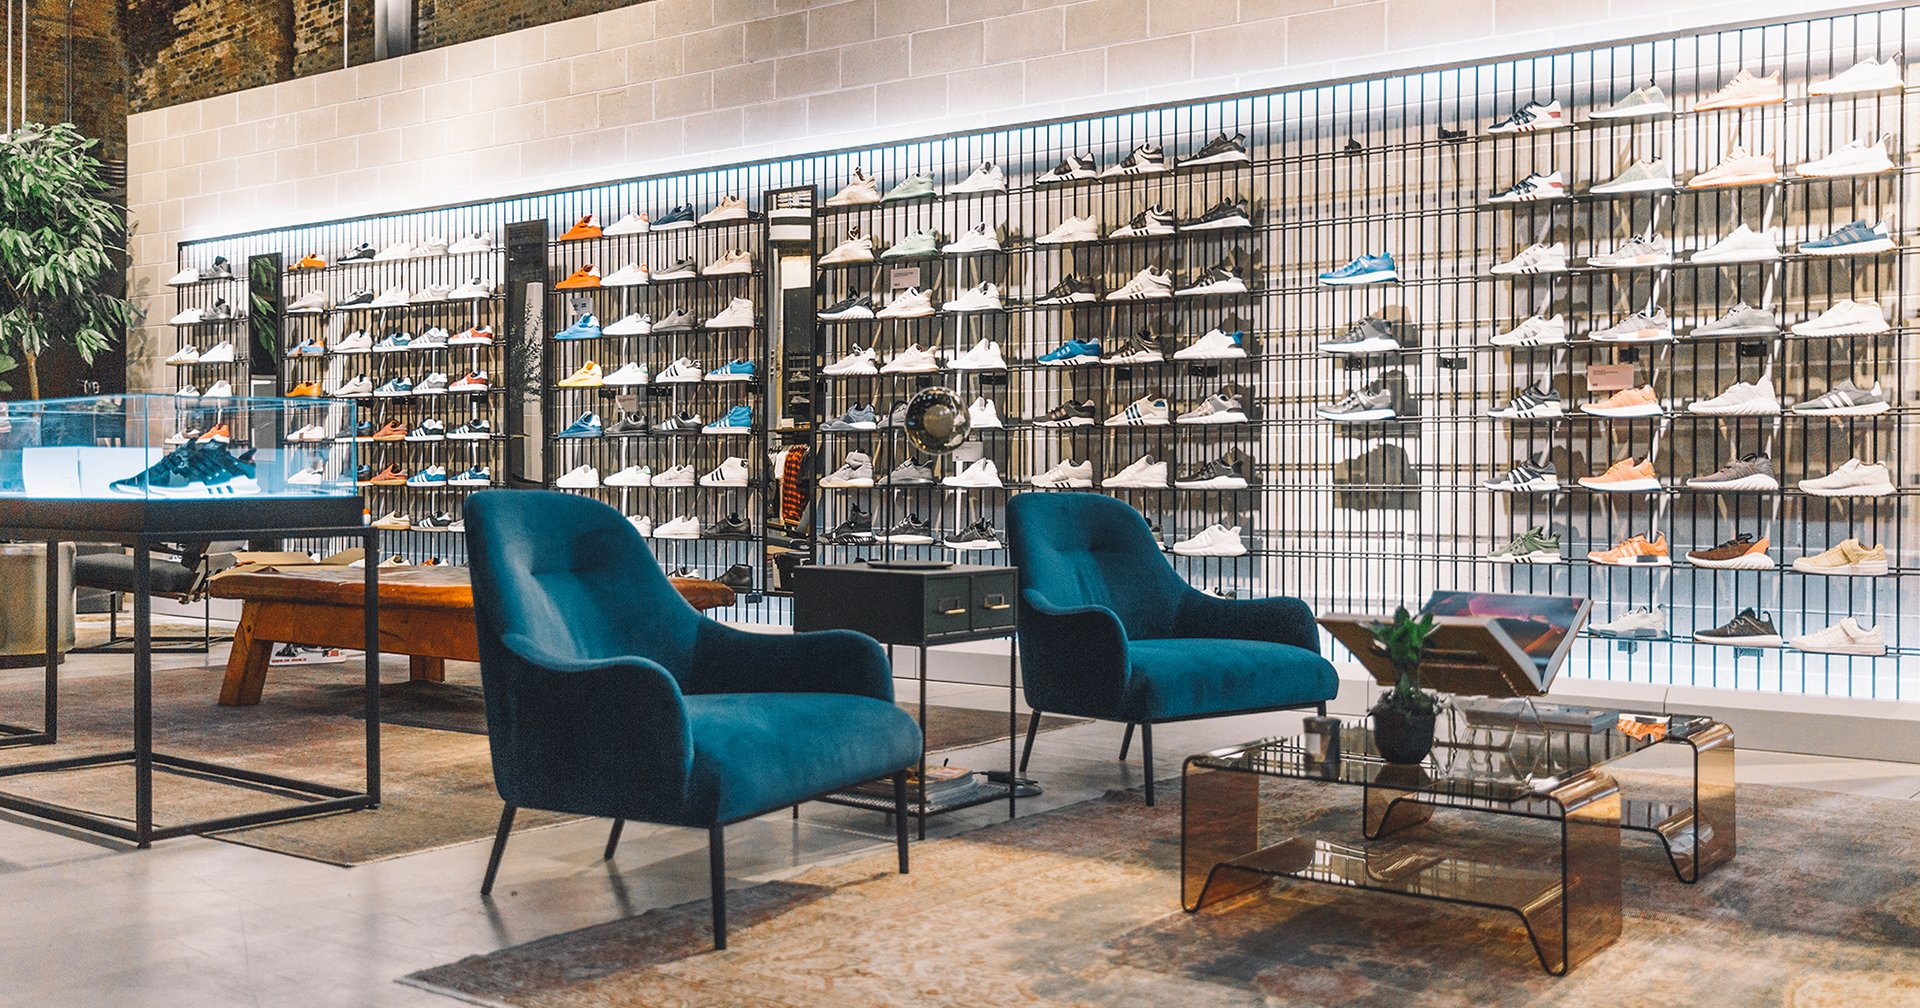 The Largest Adidas Originals Store, Now Open in Chicago